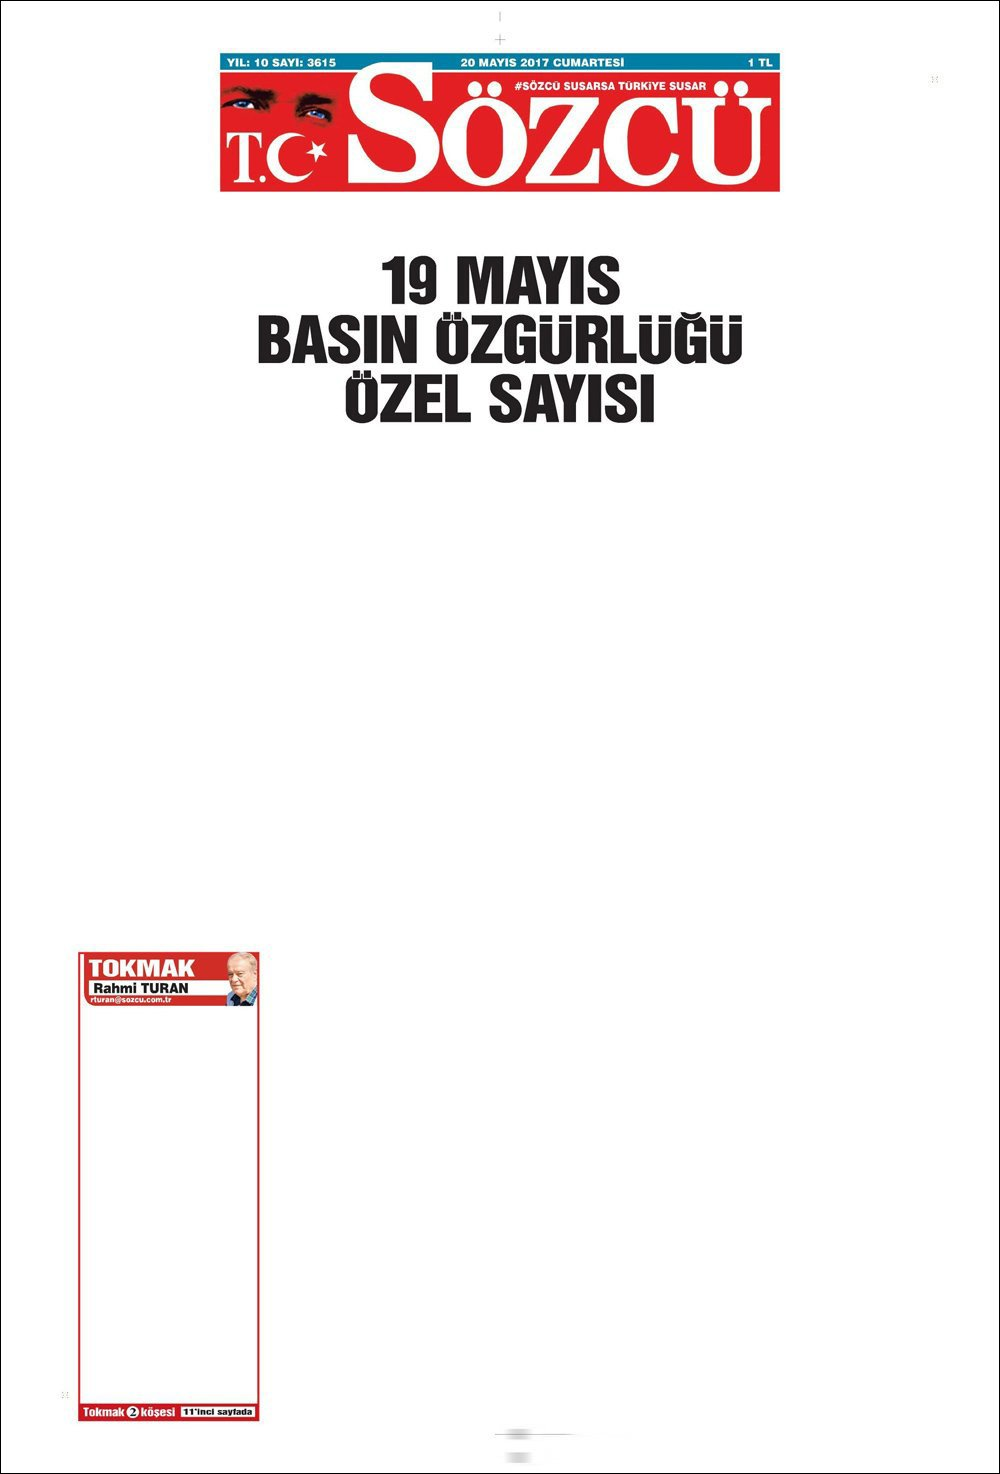 Sözcü newspaper's press freedom special issue